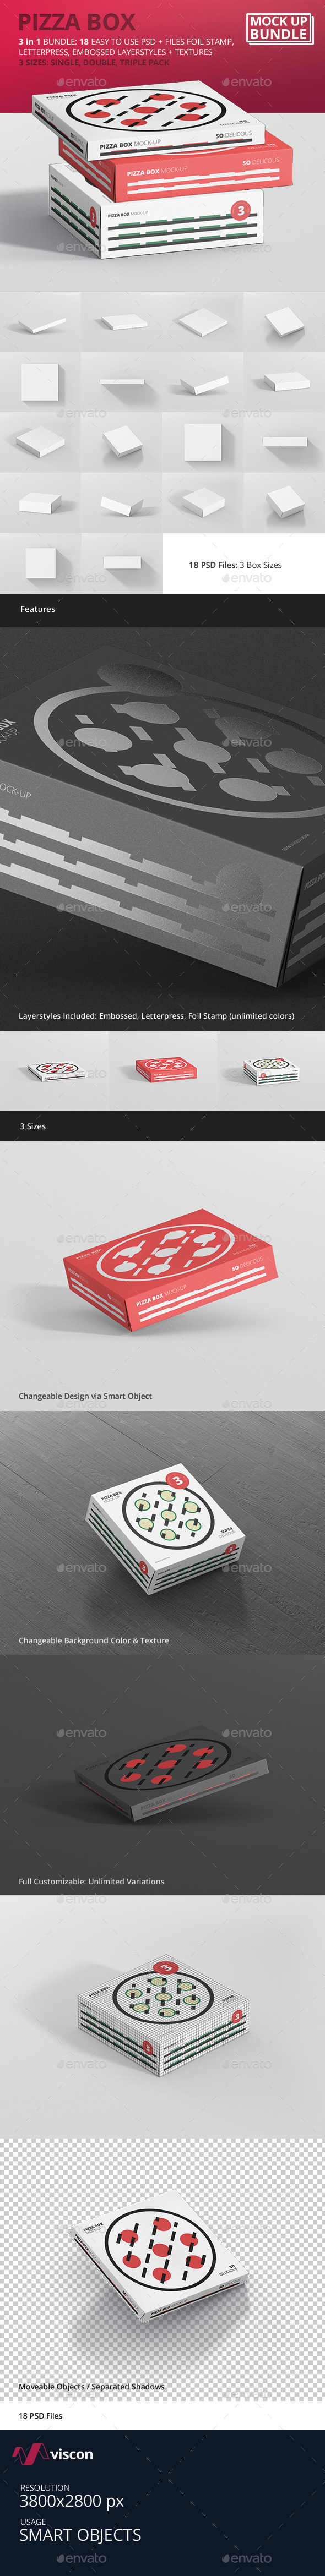 Pizza Box Mockup Bundle - Food and Drink Packaging